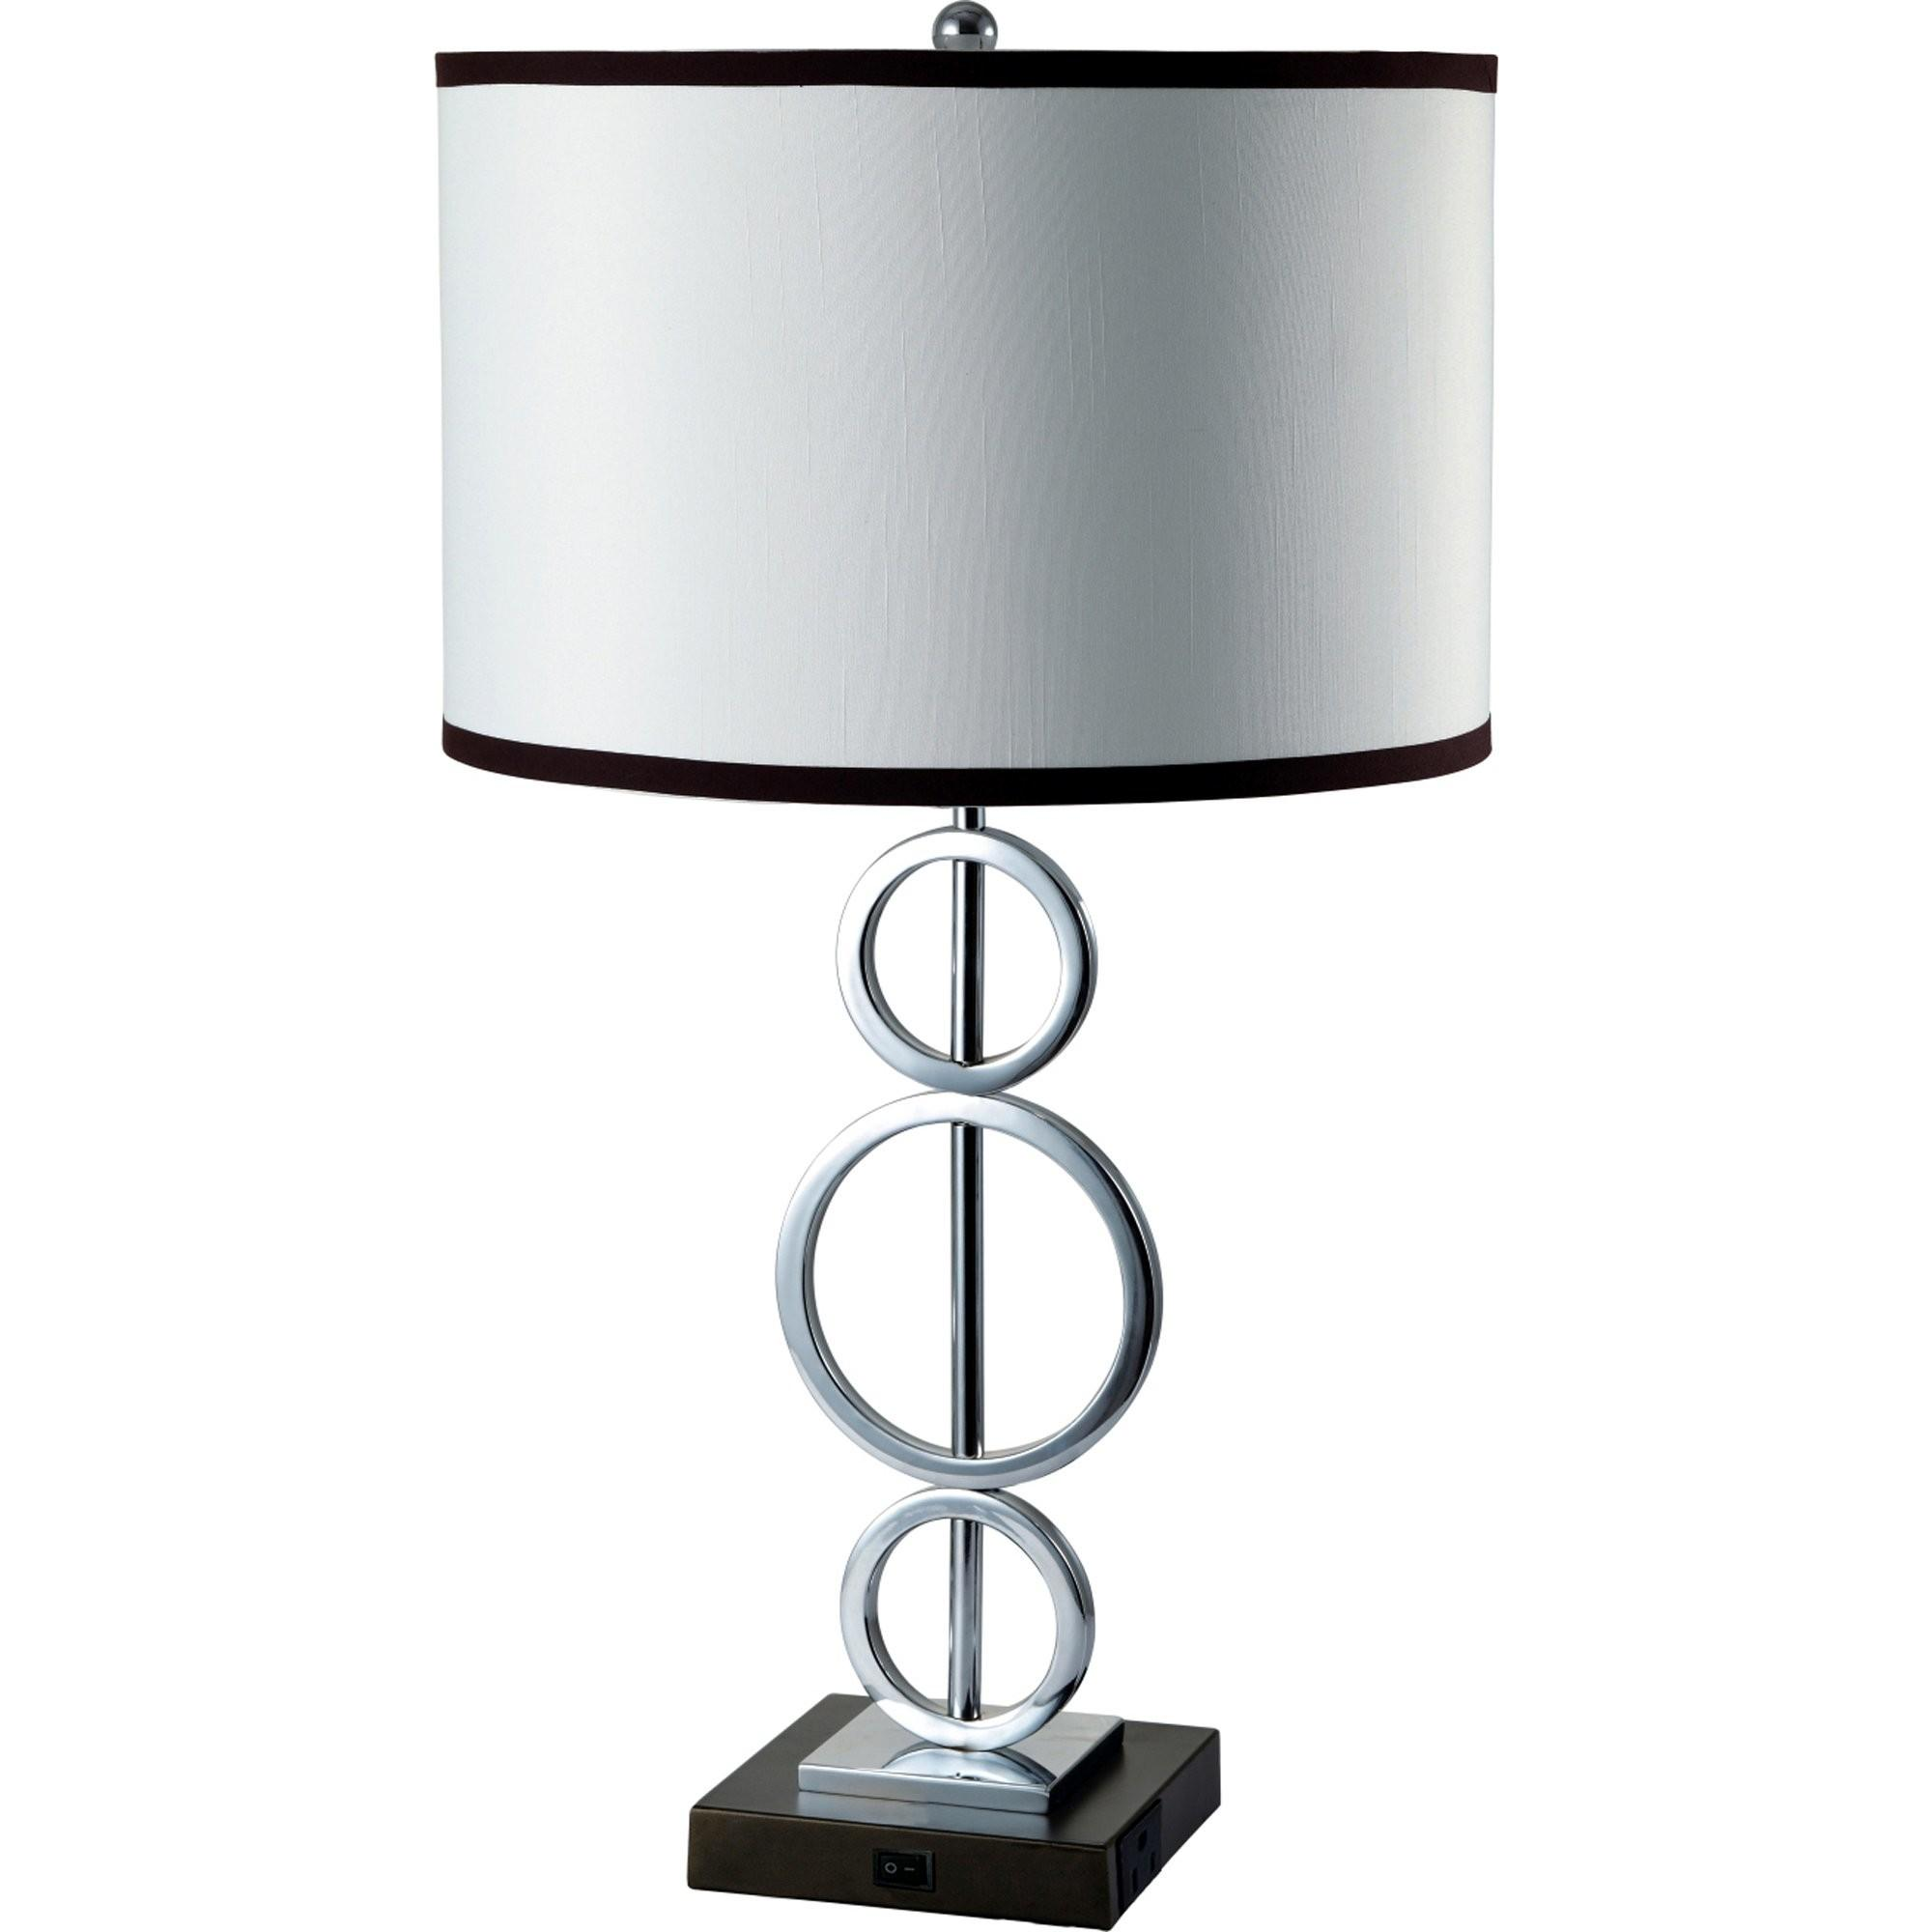 Ore Furniture Three Ring Table Lamp Drum Shade